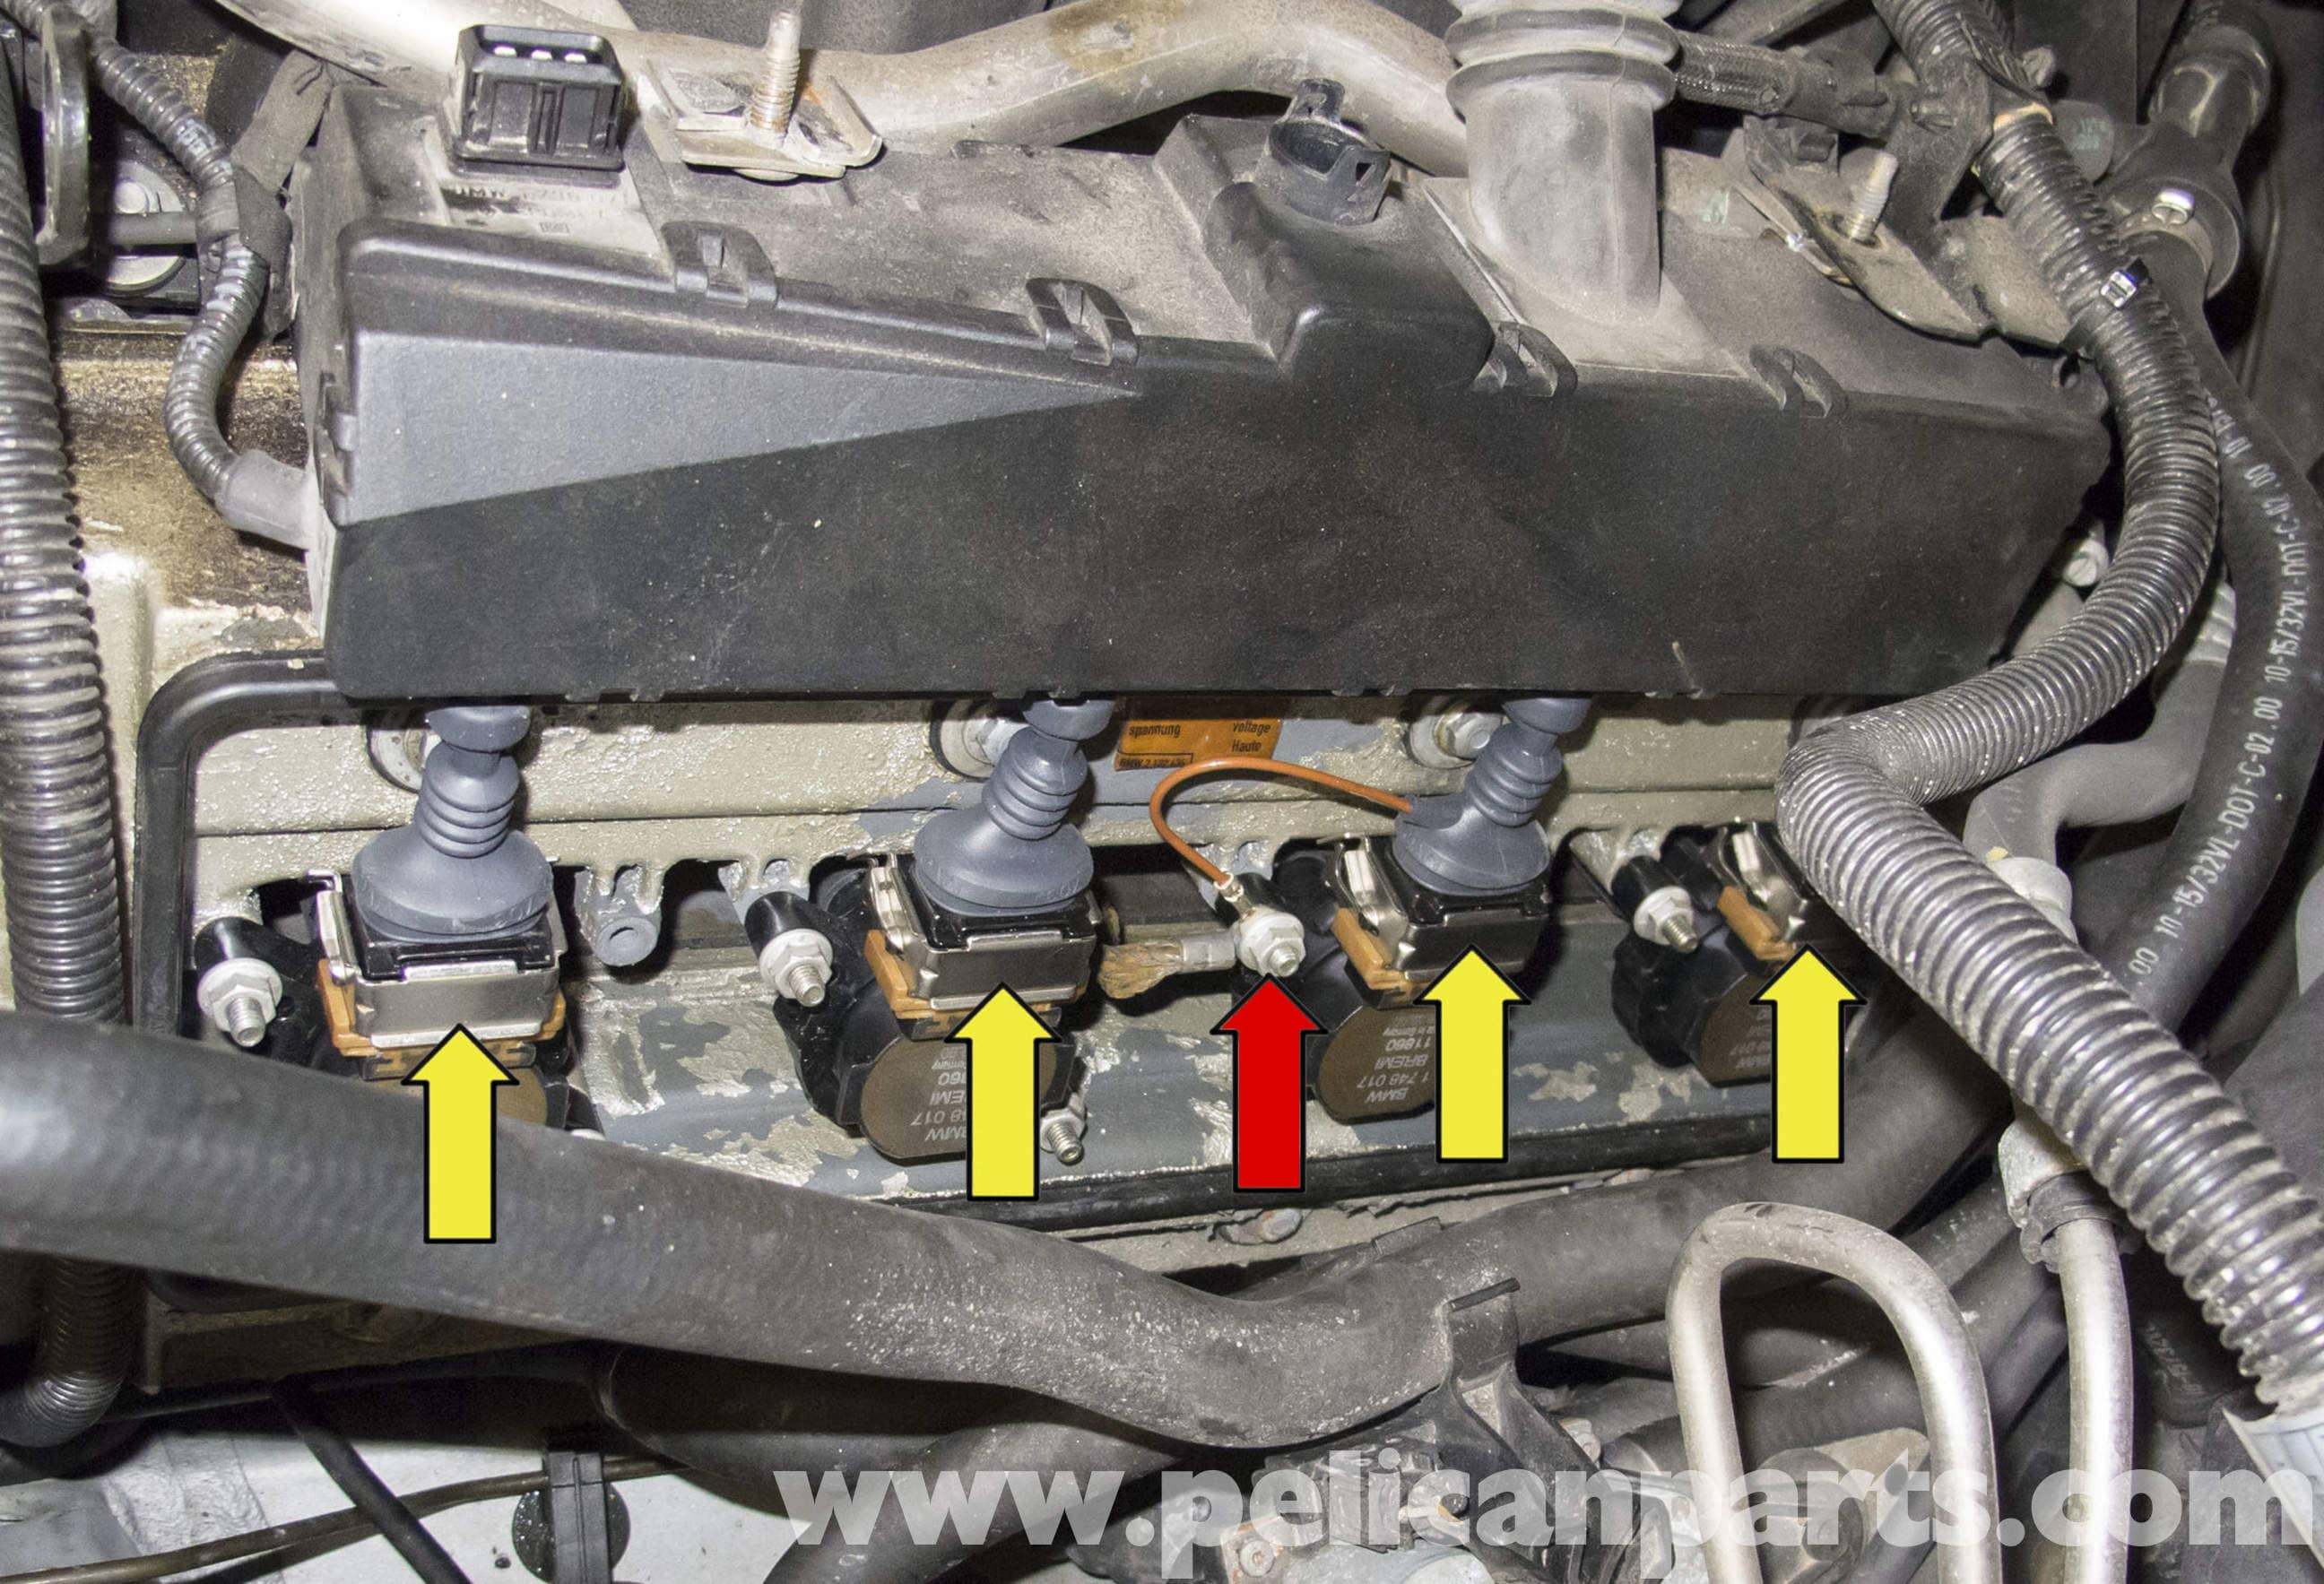 pic14 bmw x5 m62 8 cylinder fuel injector replacement (e53 2000 2006  at gsmportal.co